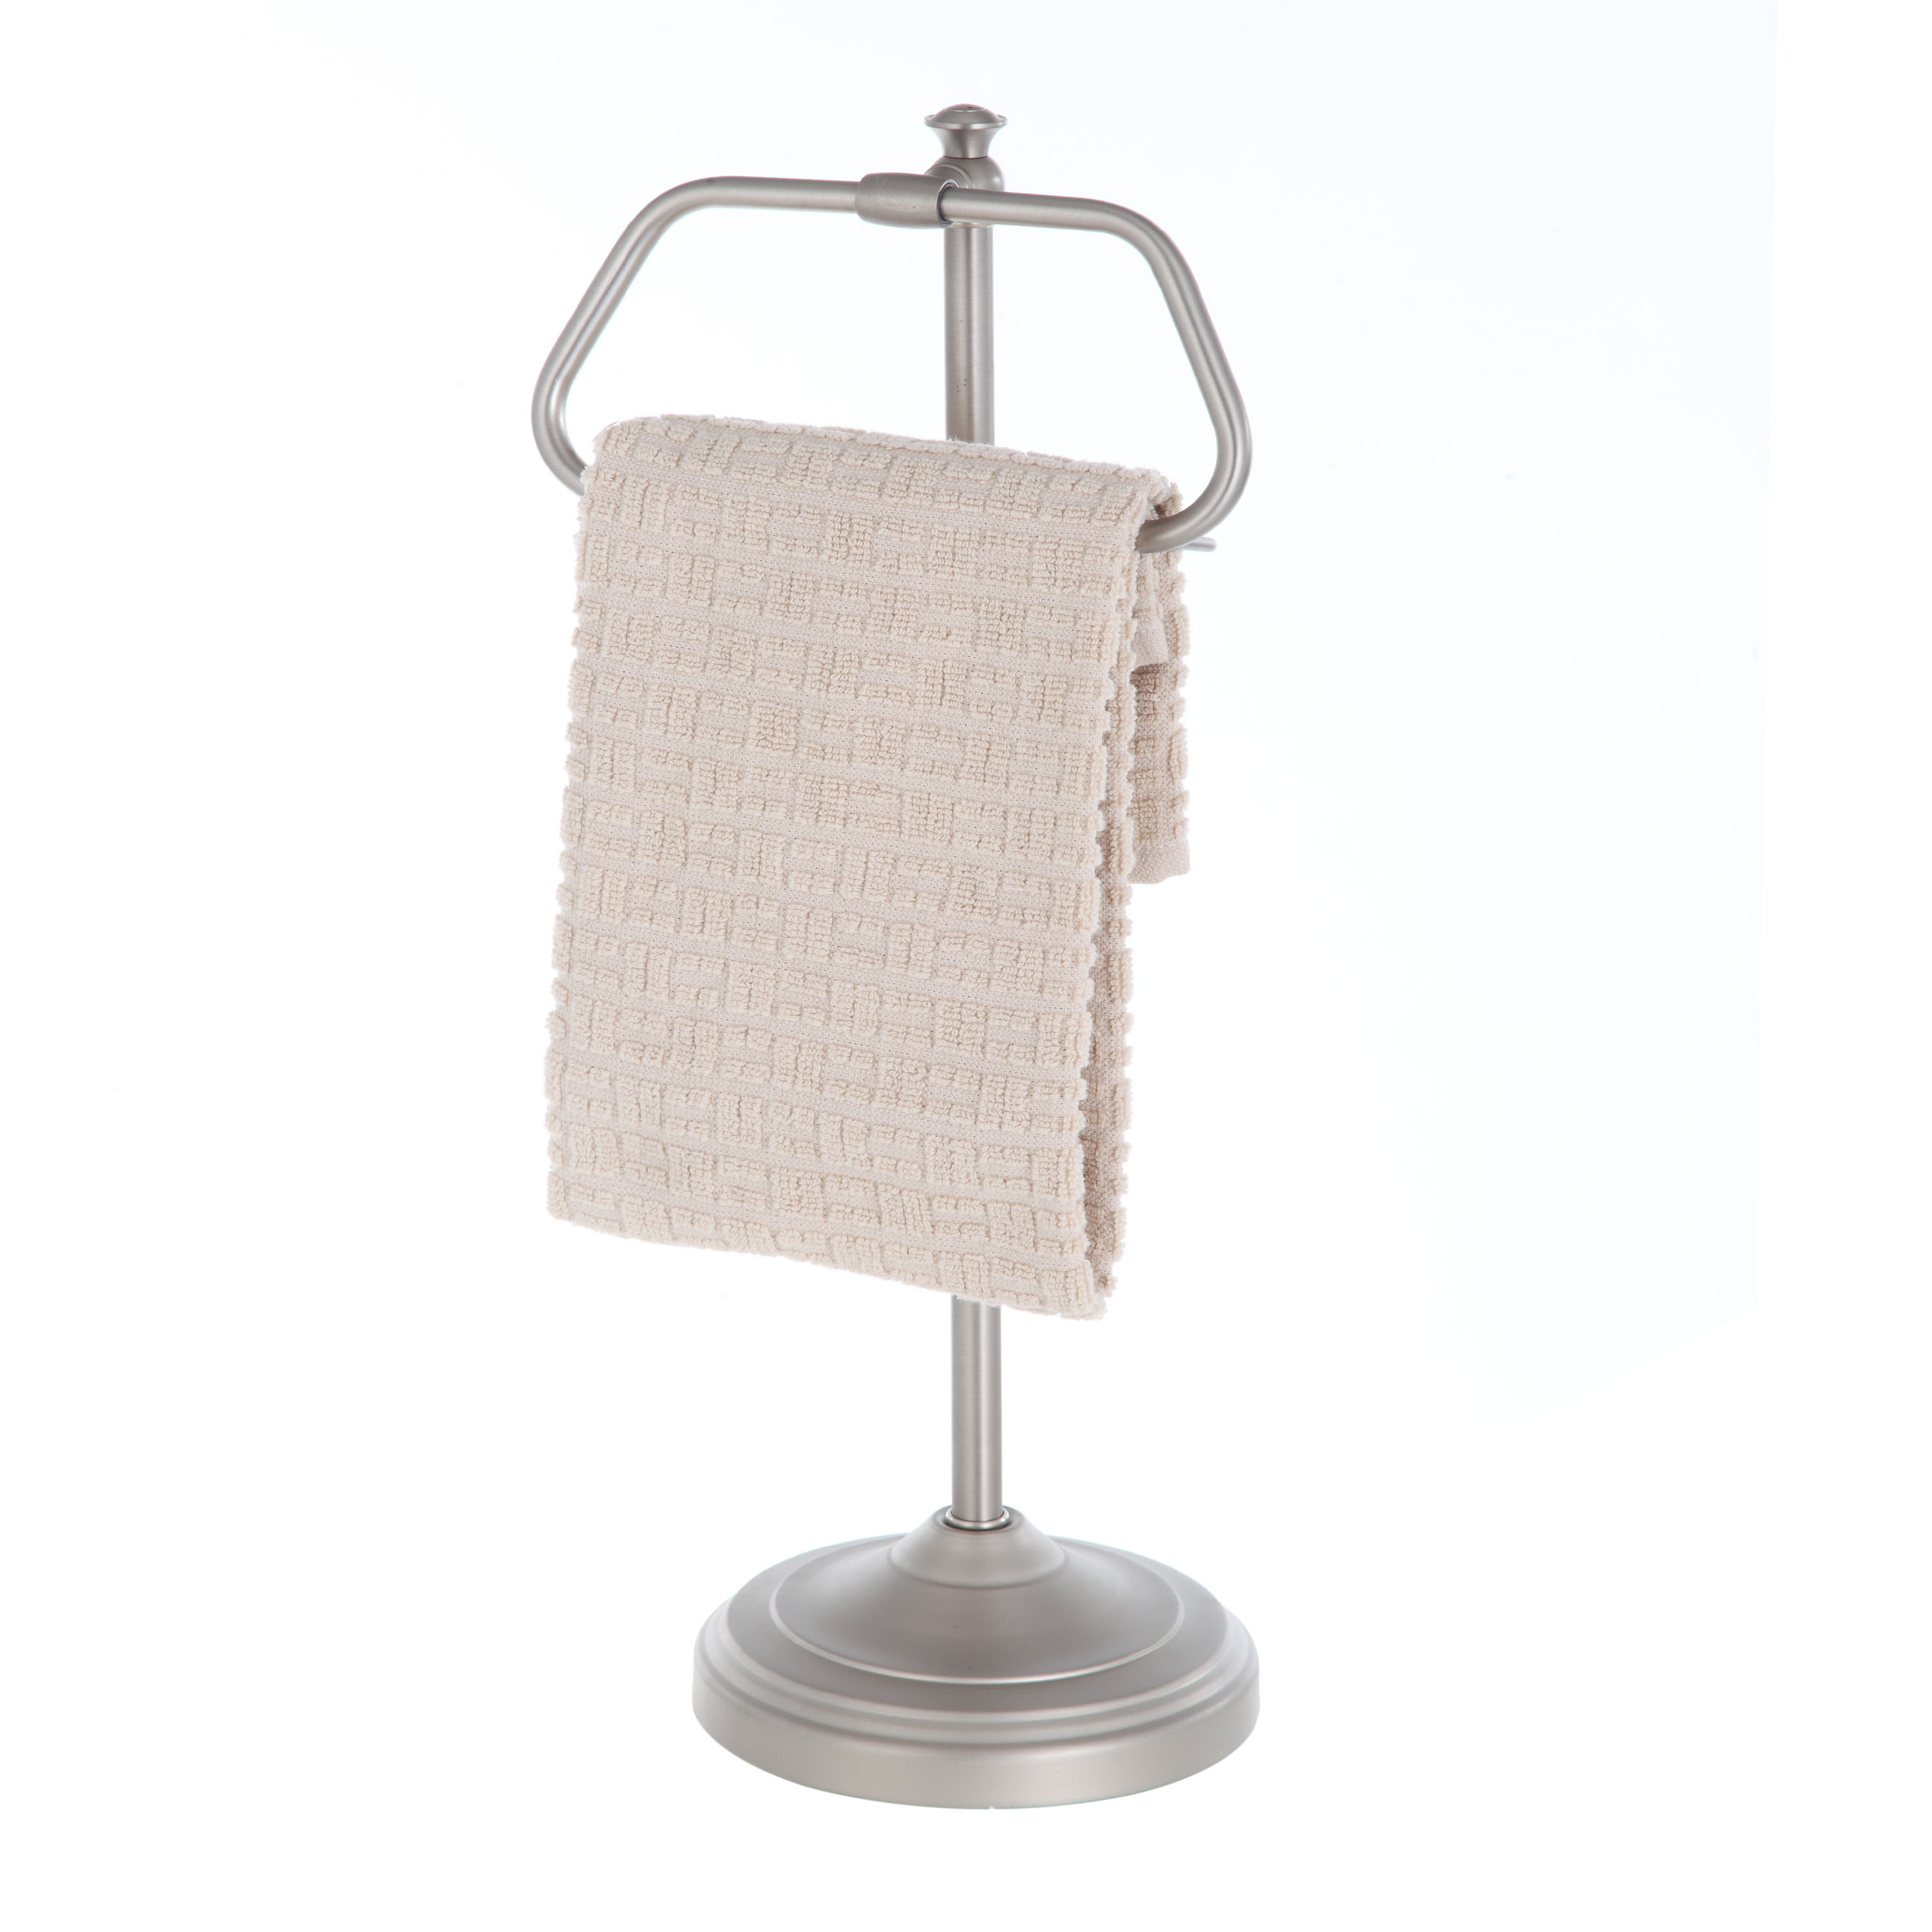 Hand Towels Holder: Better Homes And Garden Hand Towel Holder